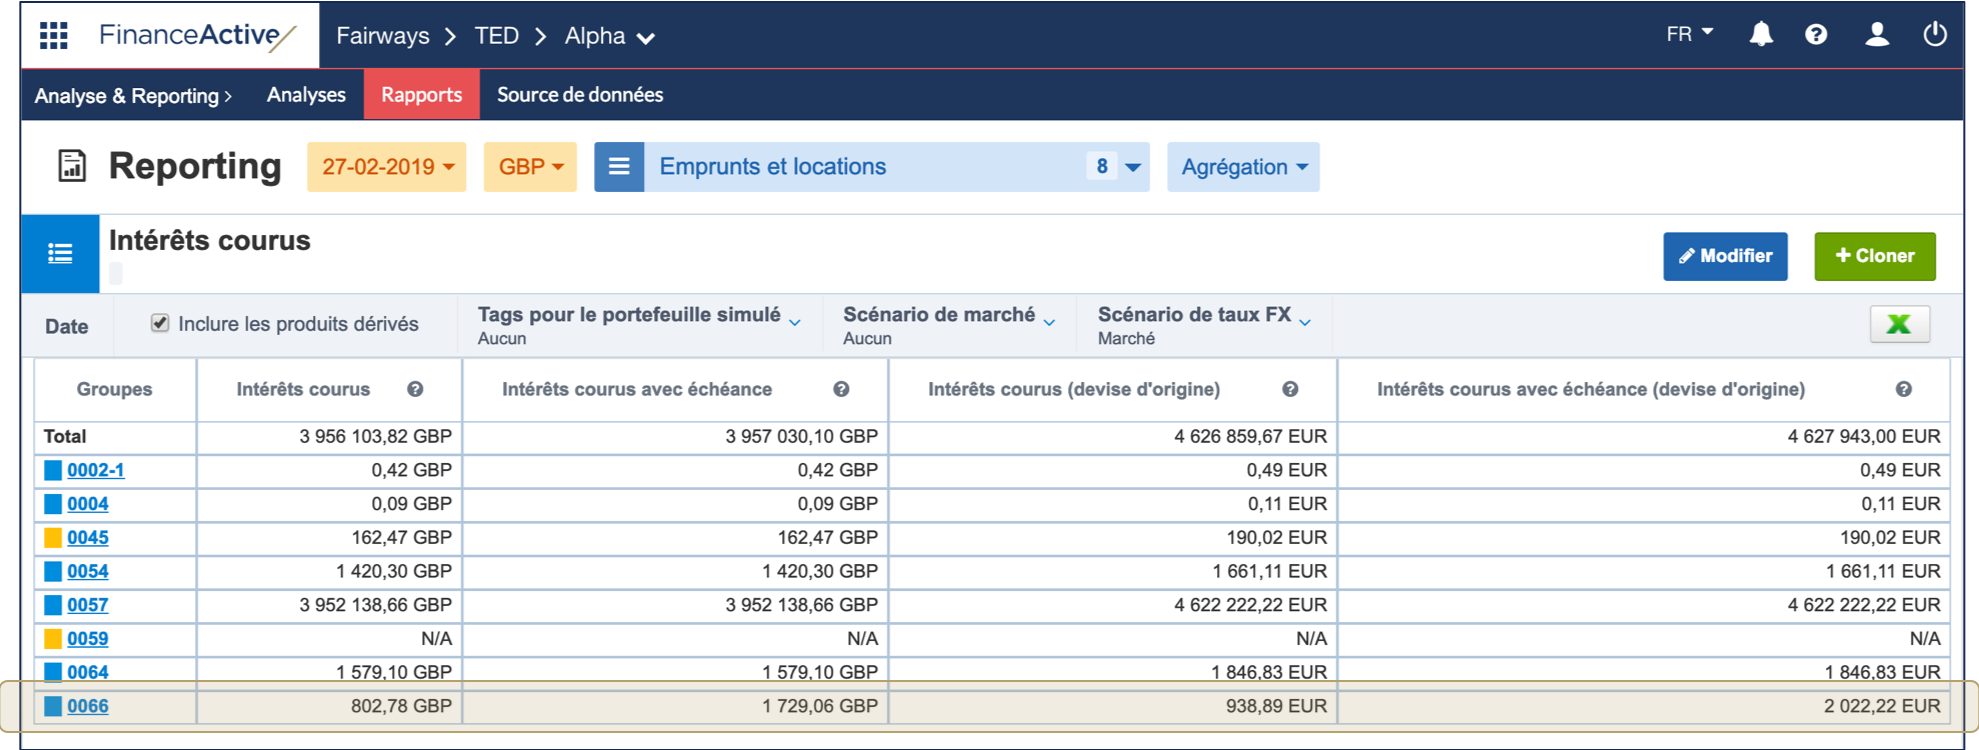 AccruedInterest_PaymentDate_Currency_FR.png